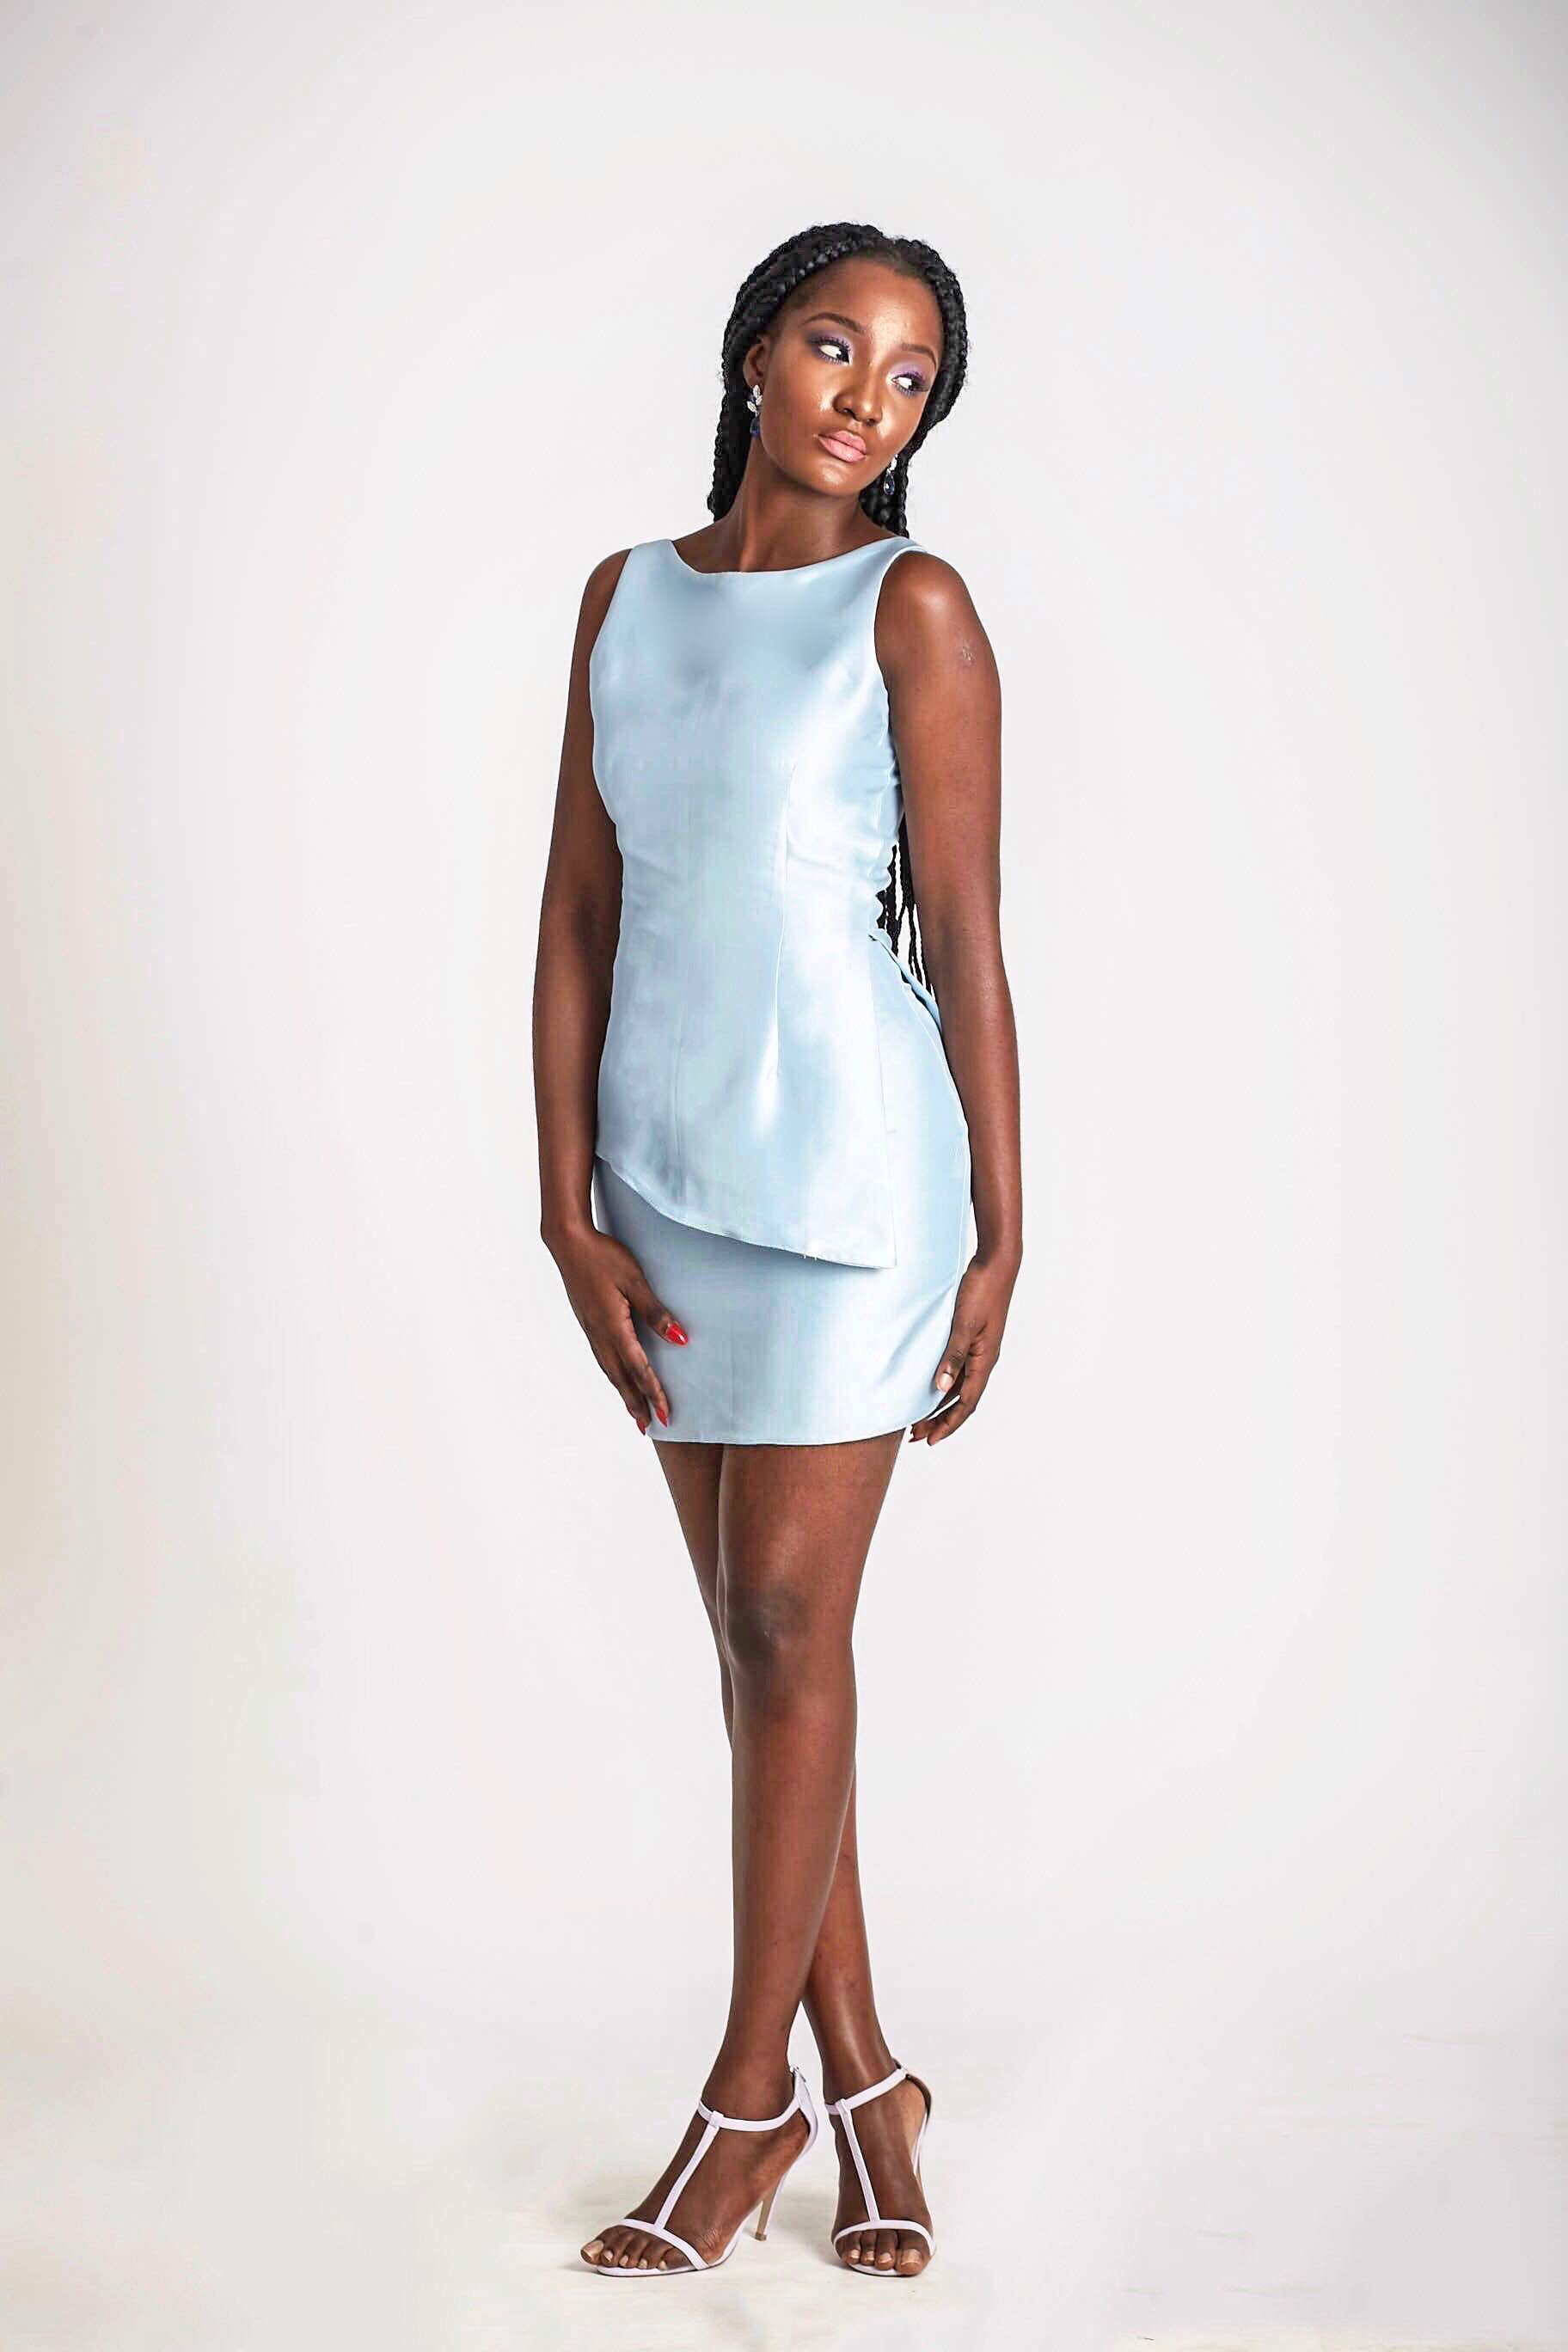 Imad Eduso - BN Style - Collection Lookbook - BellaNaija.com 02